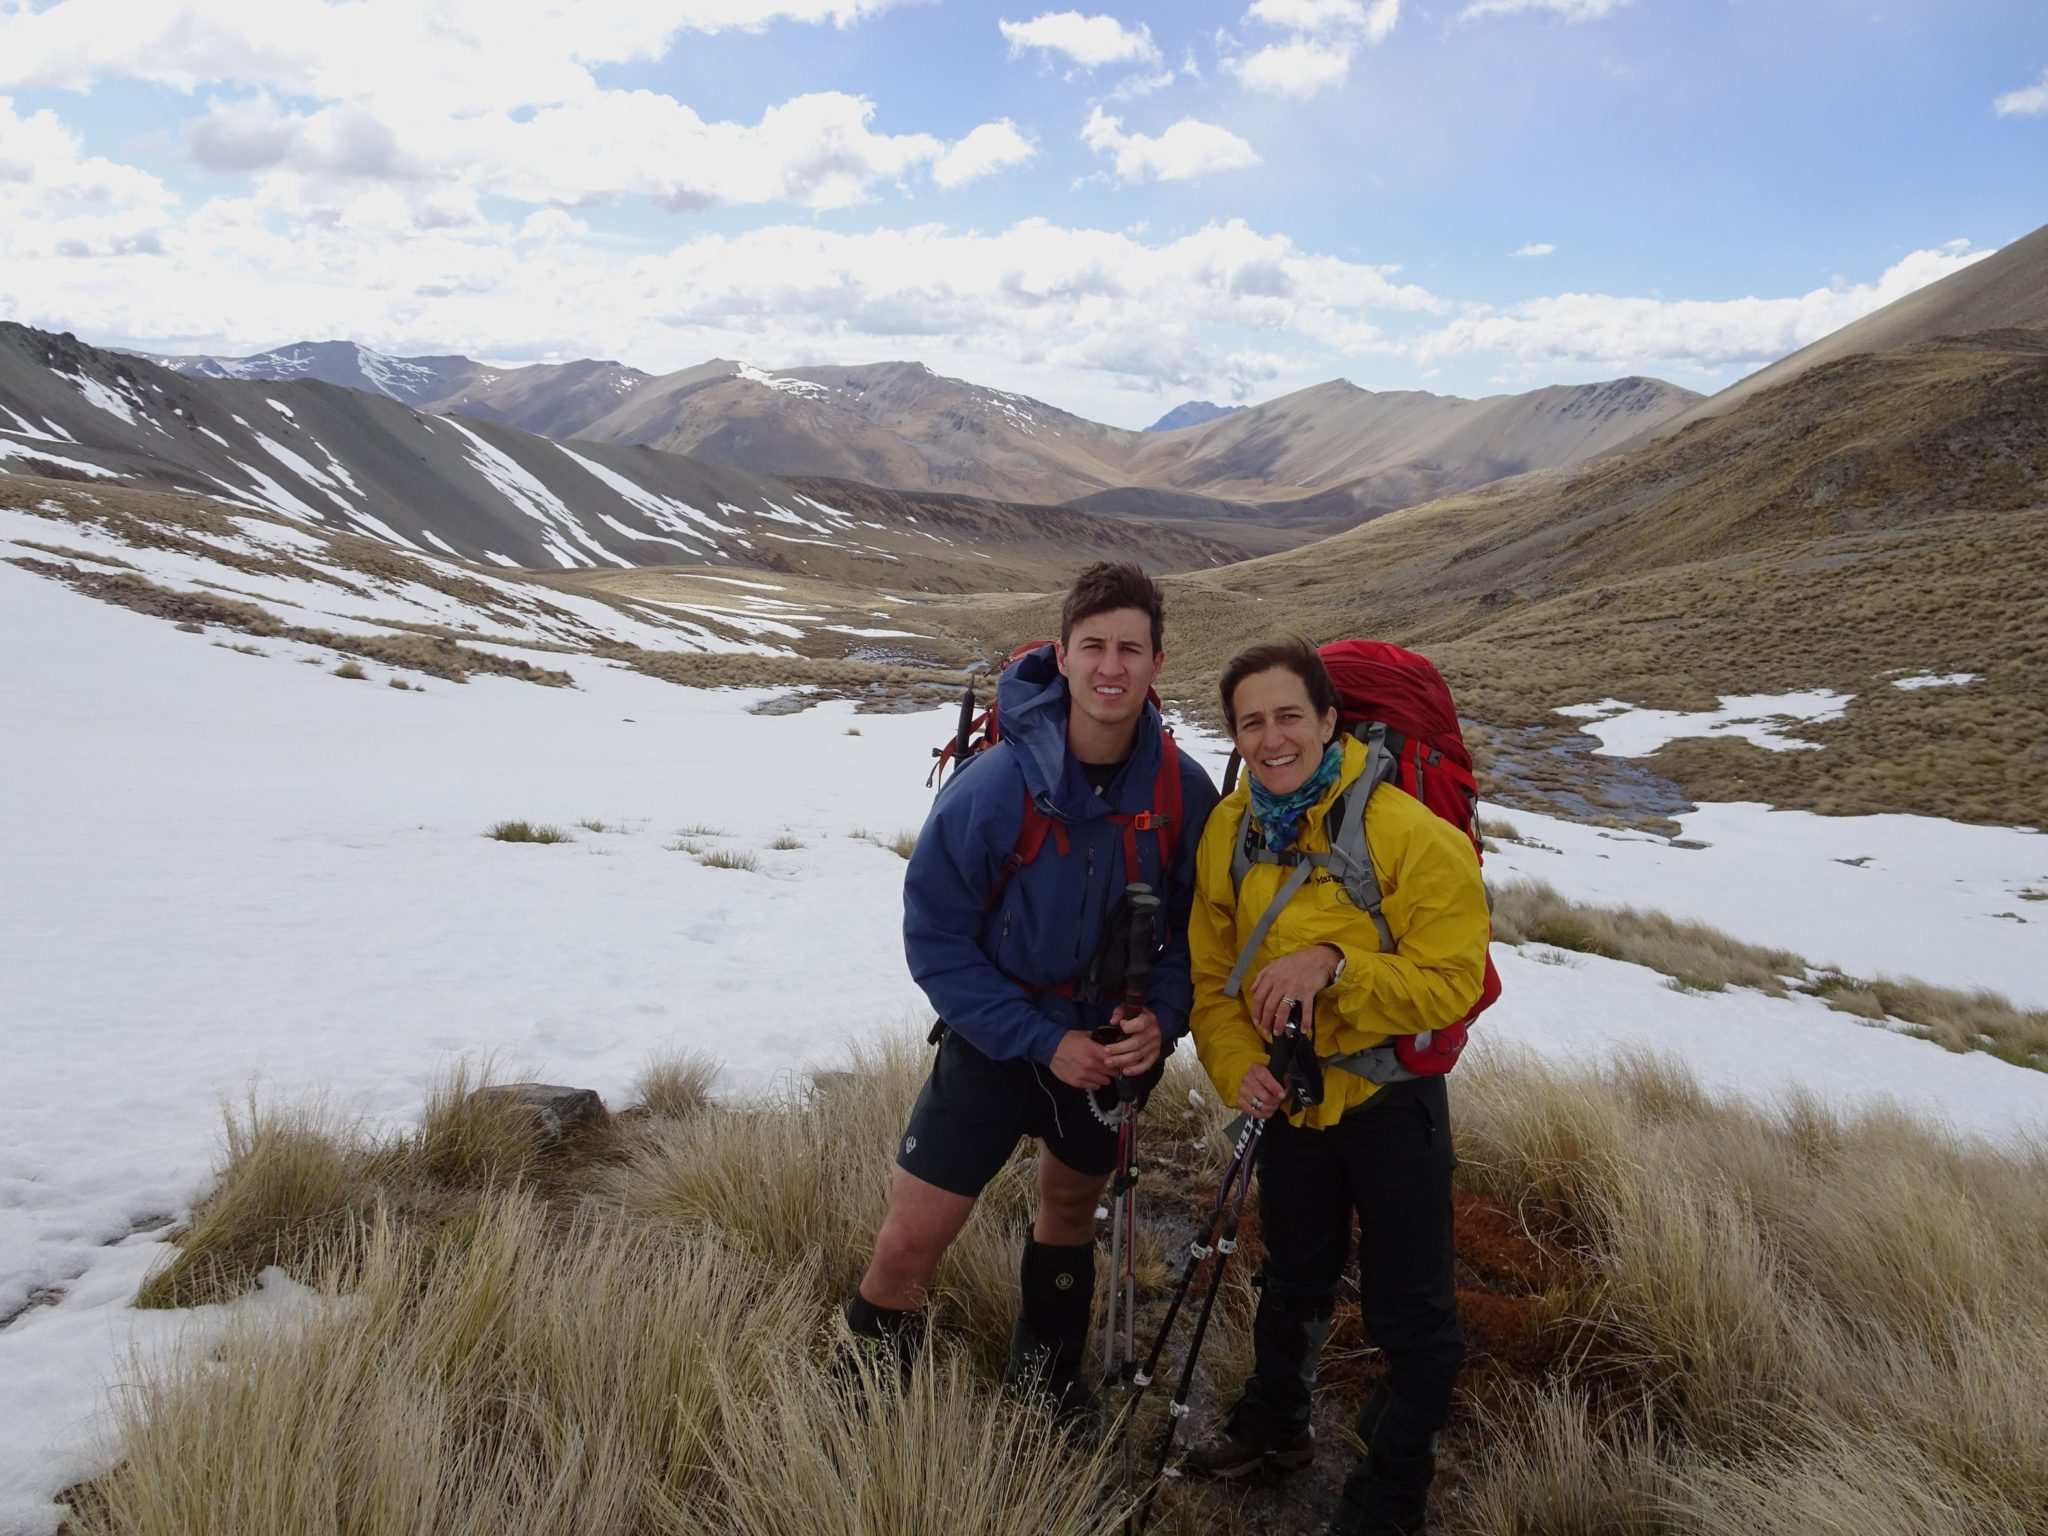 Family Hiking Vacations